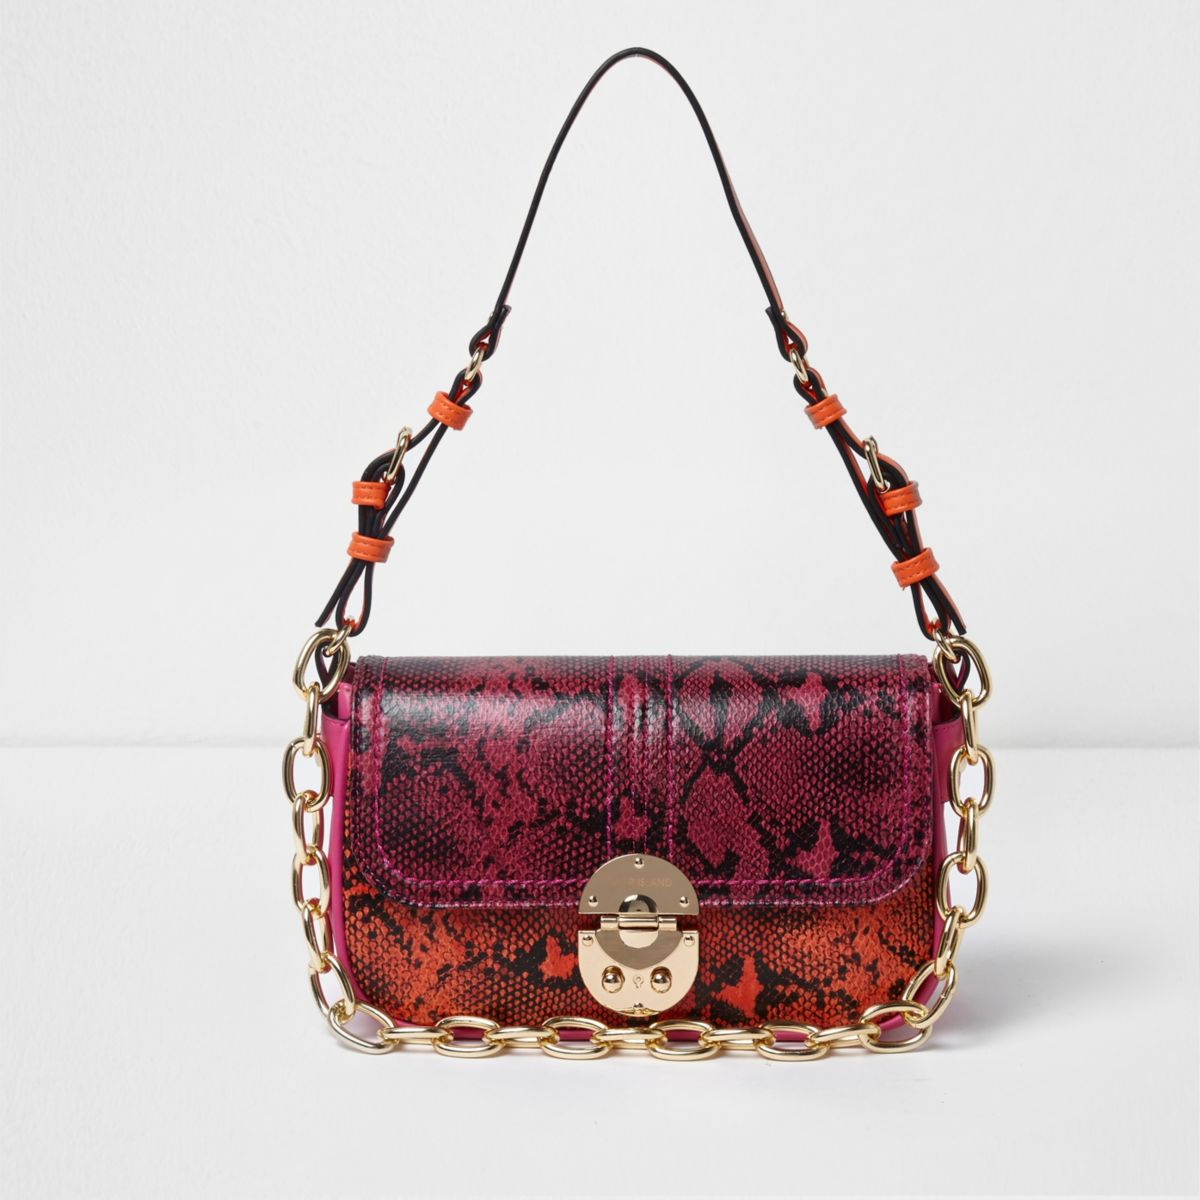 Pink and orange snakeskin underarm chain bag